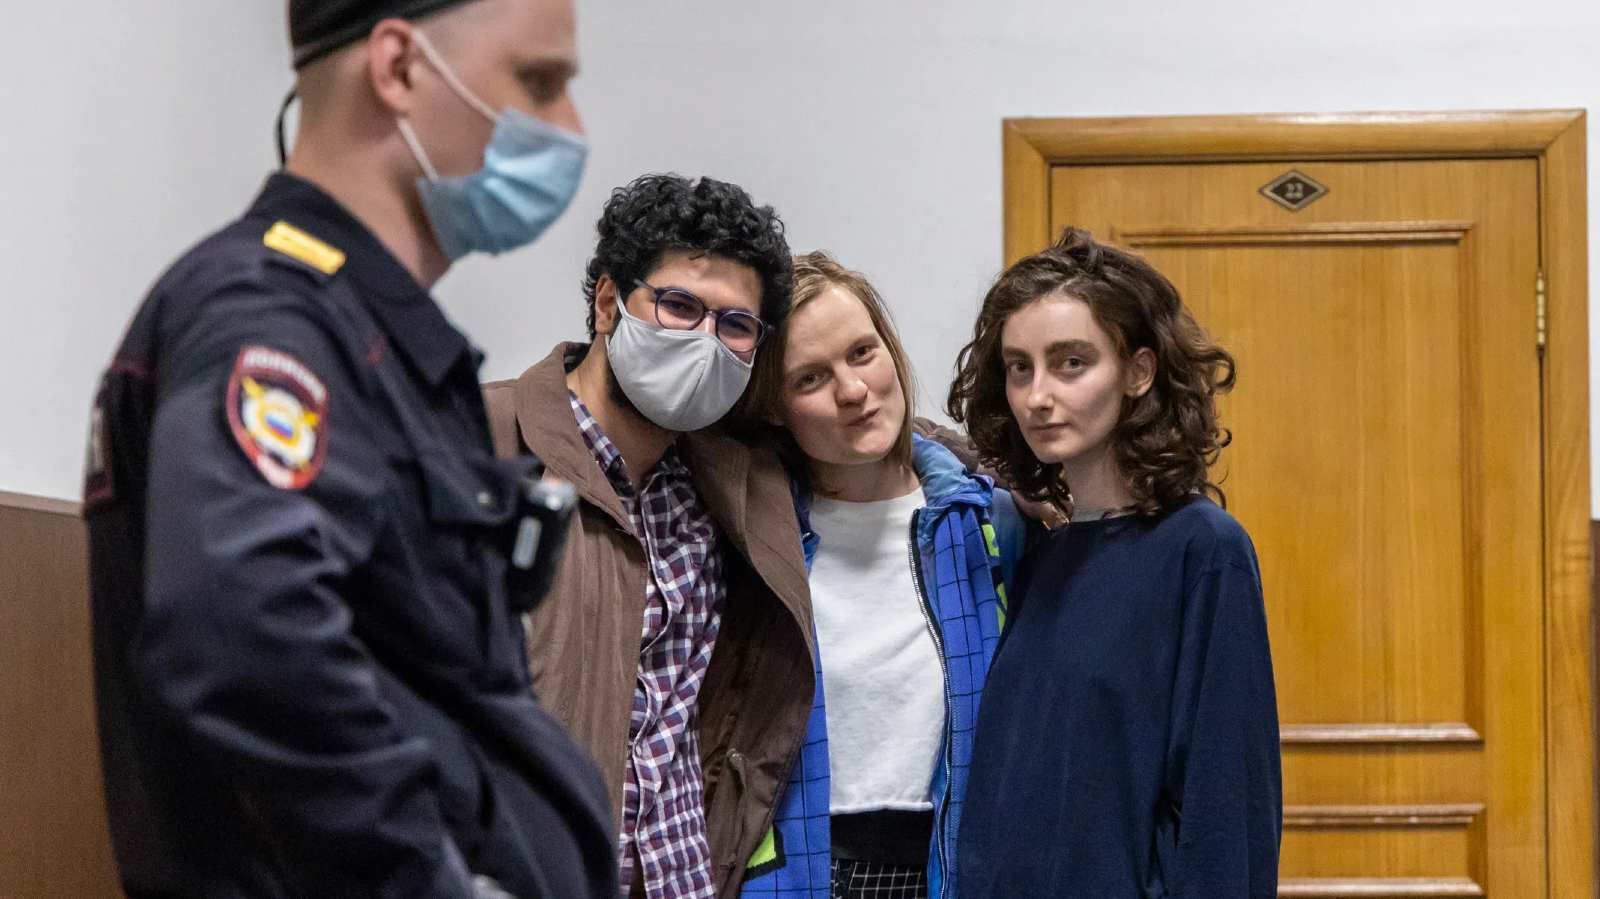 Photo: Armen Aramyan, Natalia Tyshkevich, and Alla Gutnikova in Bassmany Court. Credit: Arden Arkman/Novaya Gazeta